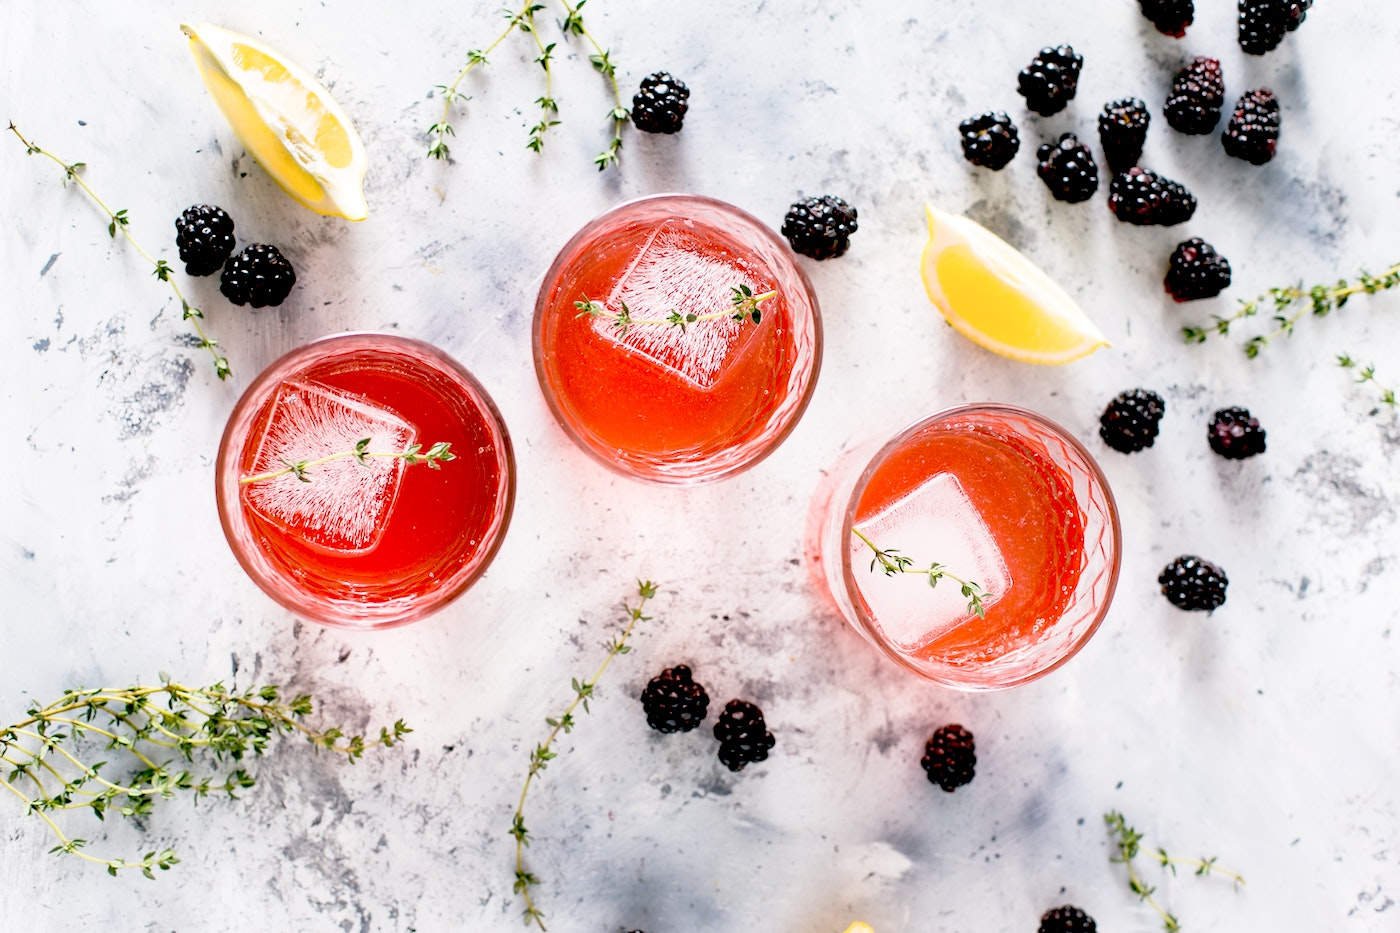 Red cocktails with blackberries around them